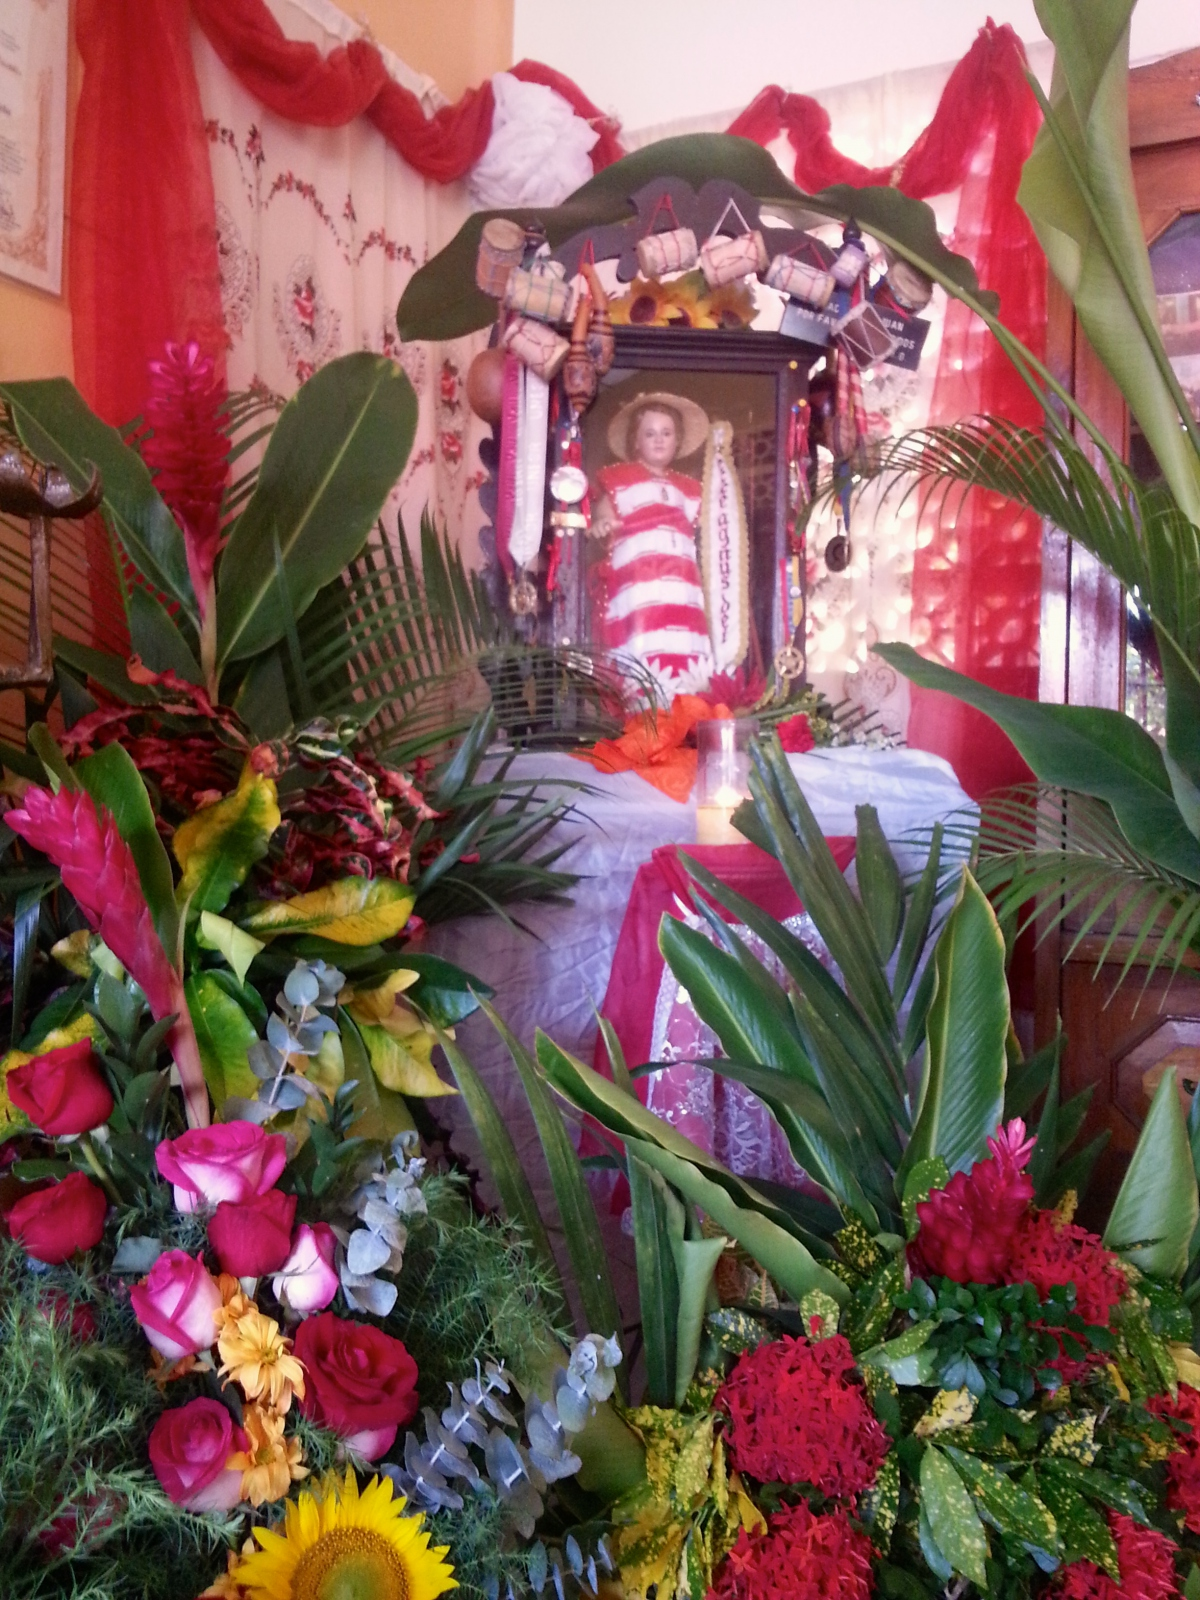 Devotees to San Juan arrive to the San Juan House and pay homage to the saint adorning his figure with flowers, instruments and letters outlining their wishes (Jeanette Charles/Venezuela Analysis).